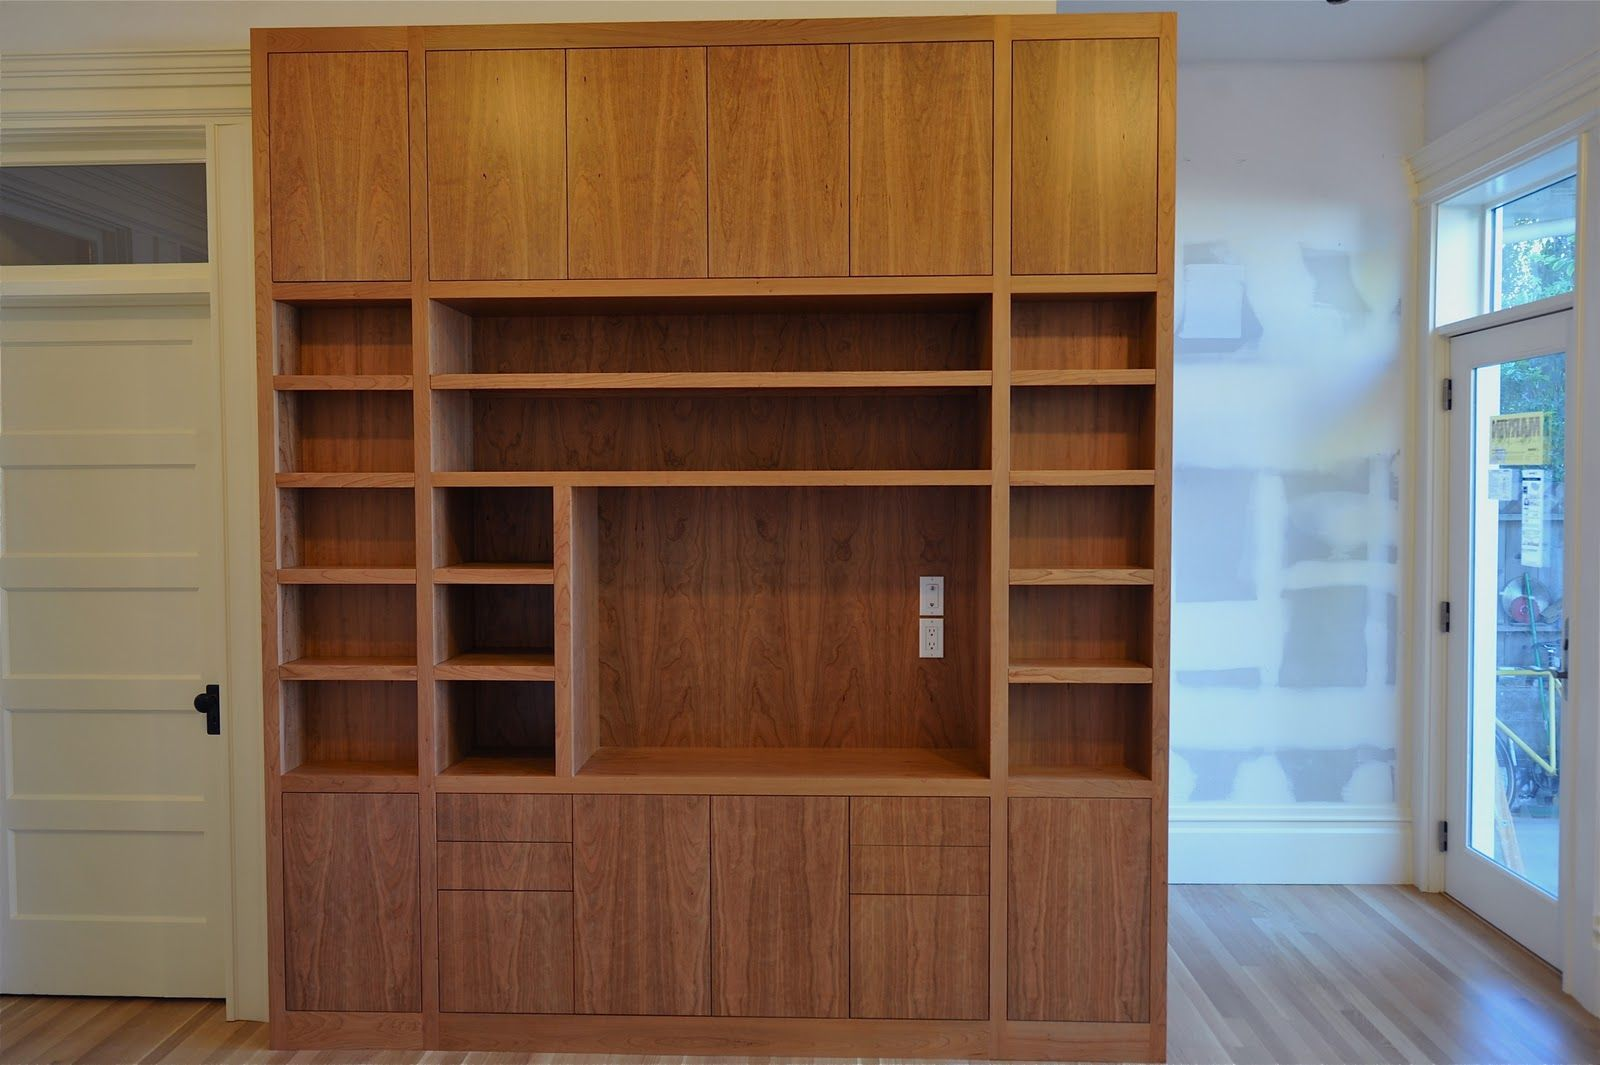 Furniture Marvelous Modern With Solid Hardwood Finish And Wood Grain Rollable Flooring For Kitchen Wonderful Wall Cabinet Designs Jpg